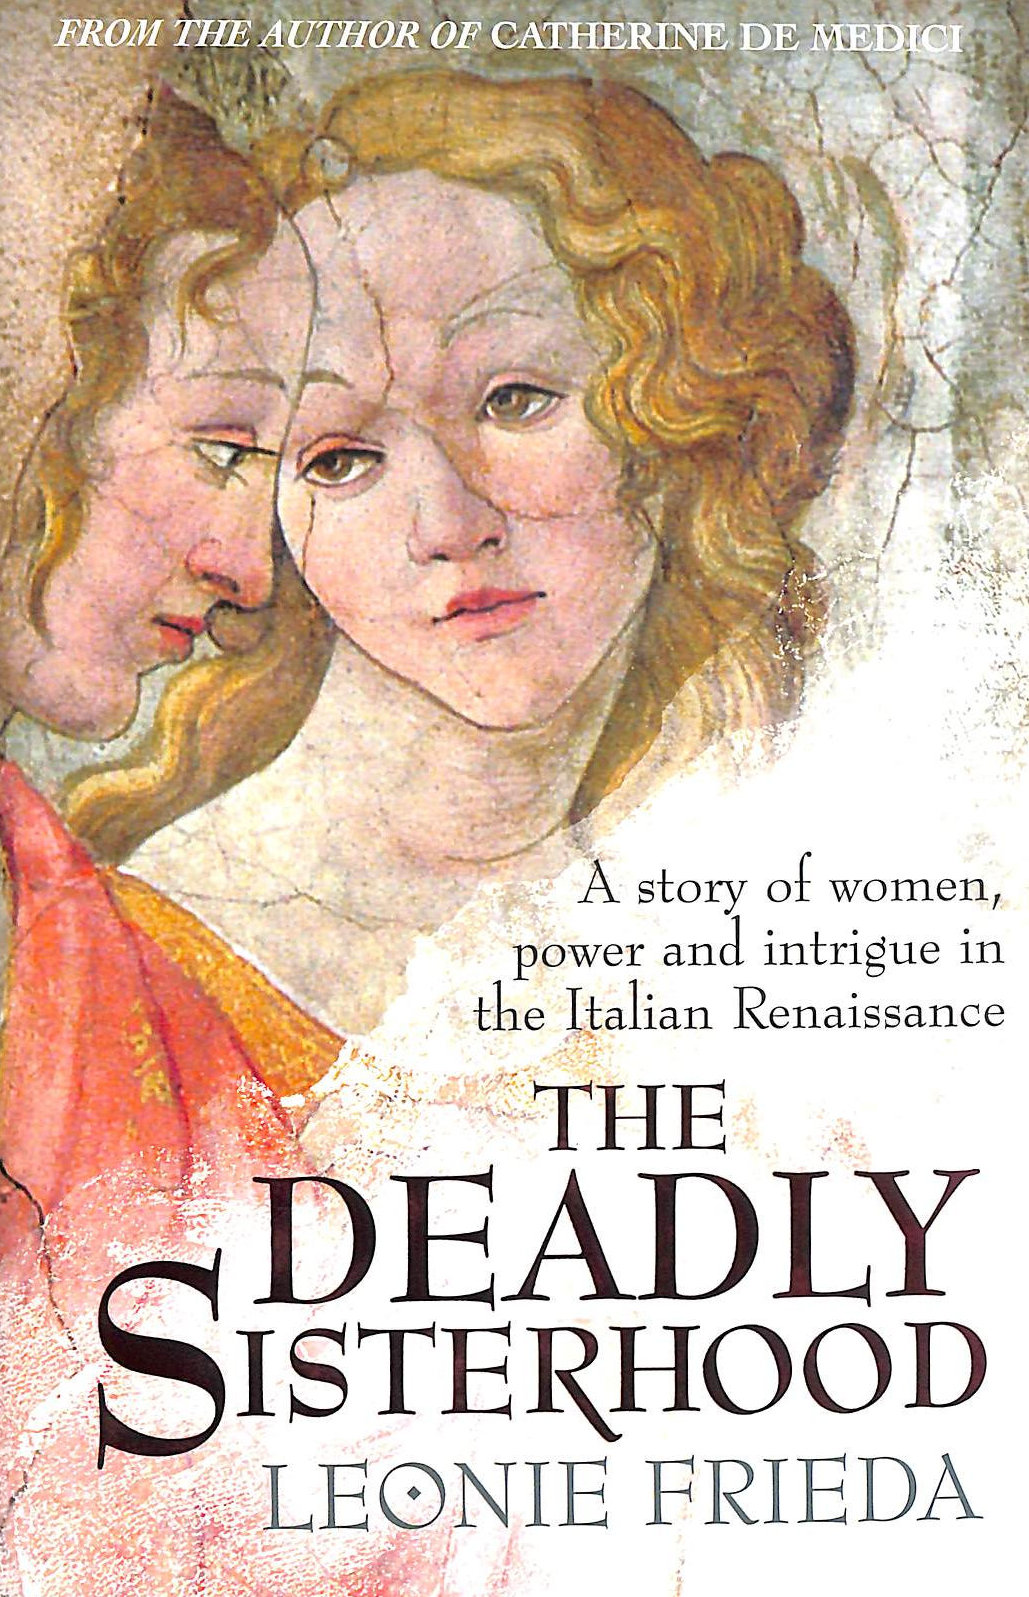 Image for The Deadly Sisterhood: A story of Women, Power and Intrigue in the Italian Renaissance